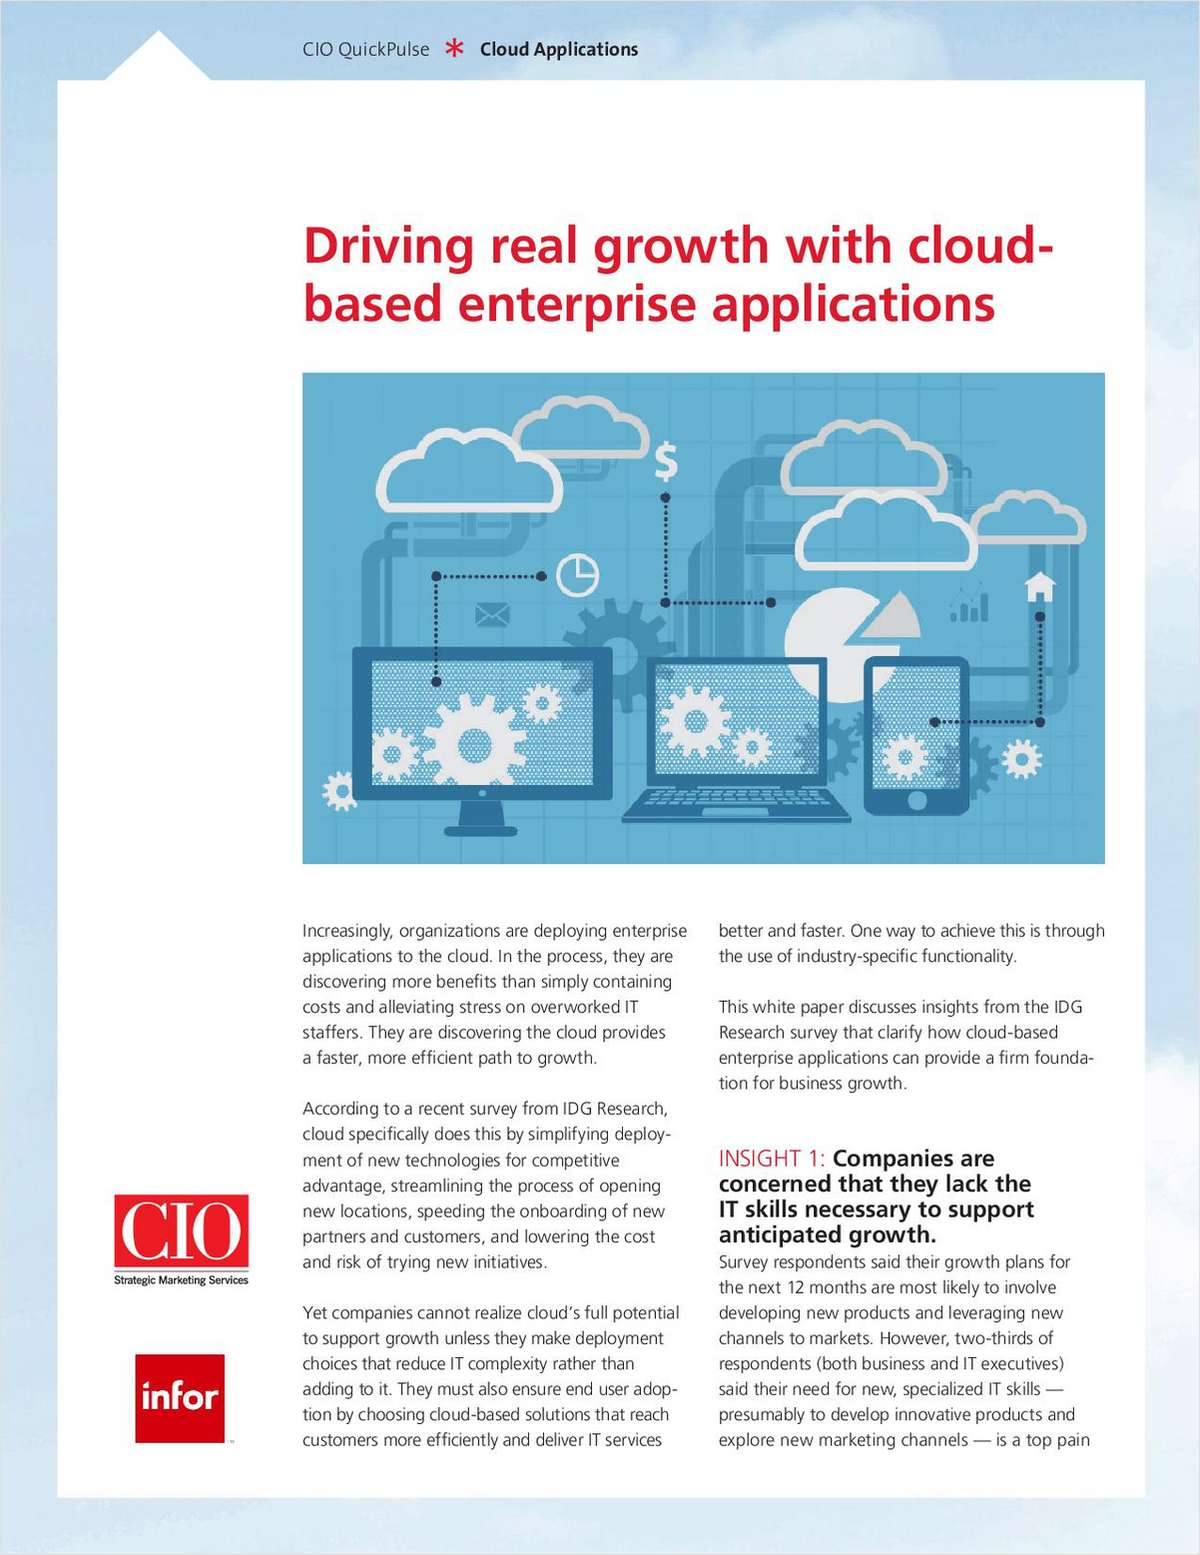 Driving Real Growth with Cloud-based Enterprise Applications